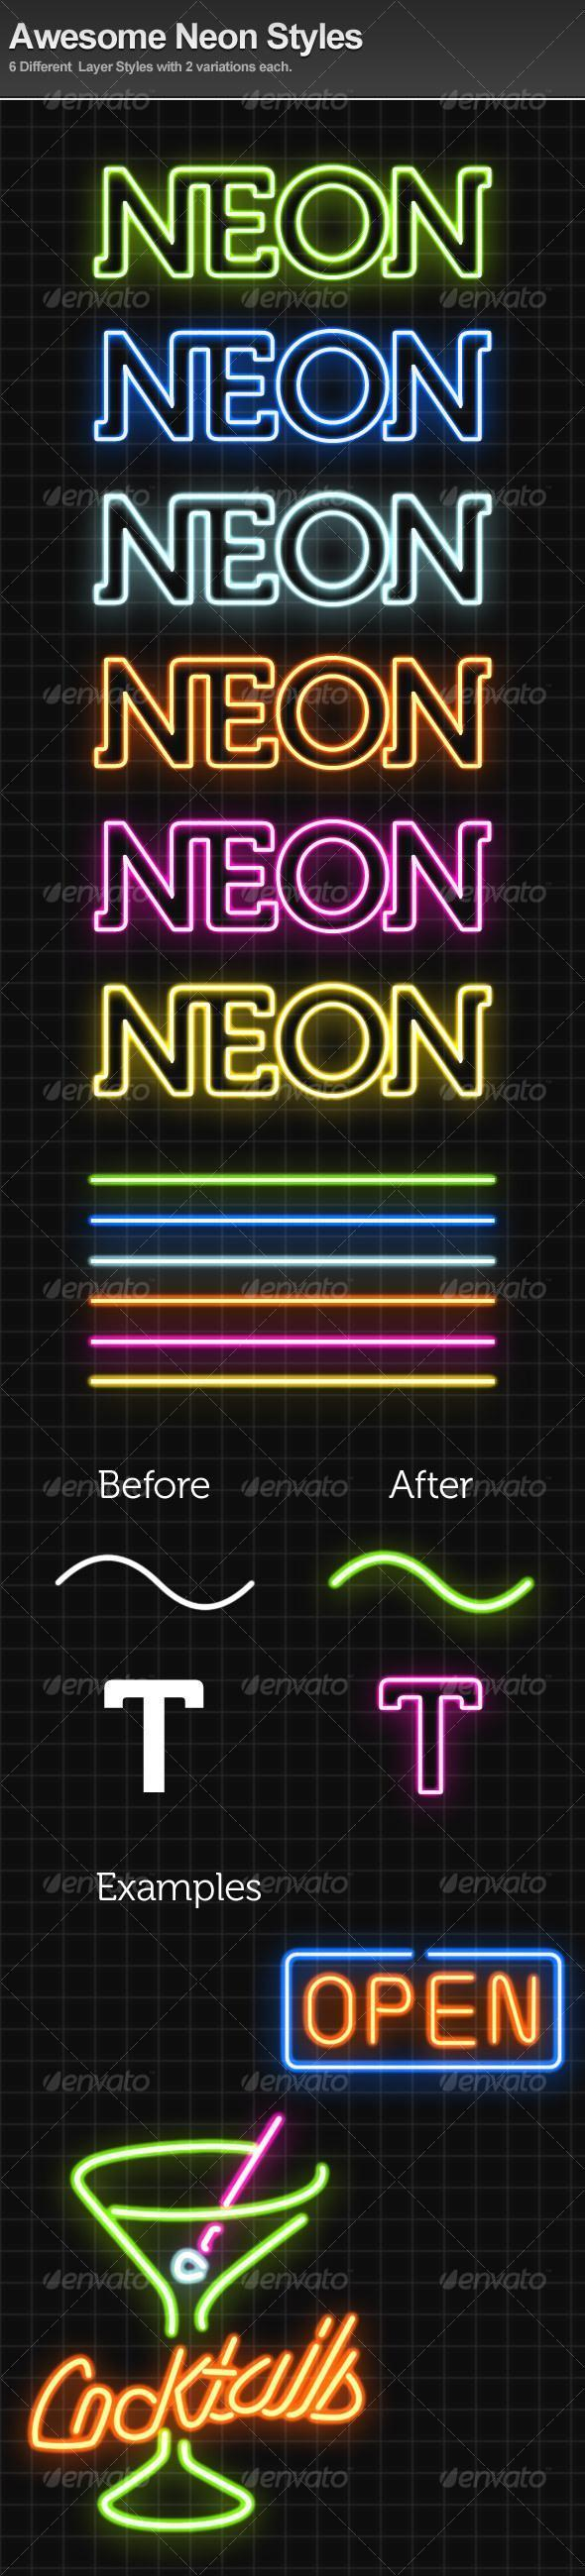 Neon Light Photoshop Text Styles